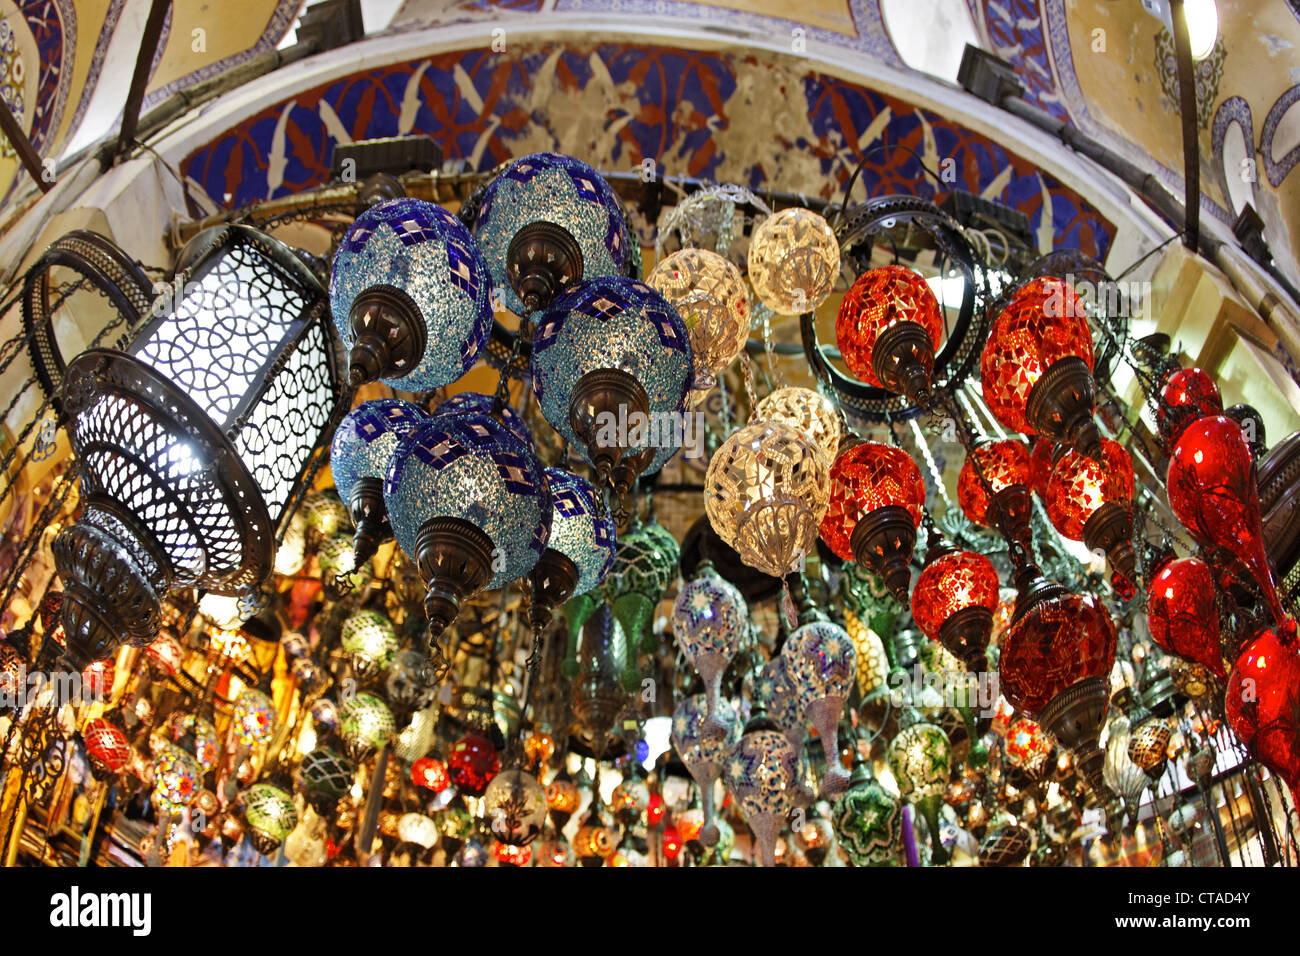 Turkish lamps at Grand Bazaar market, Istanbul, Turkey, Europe - Stock Image